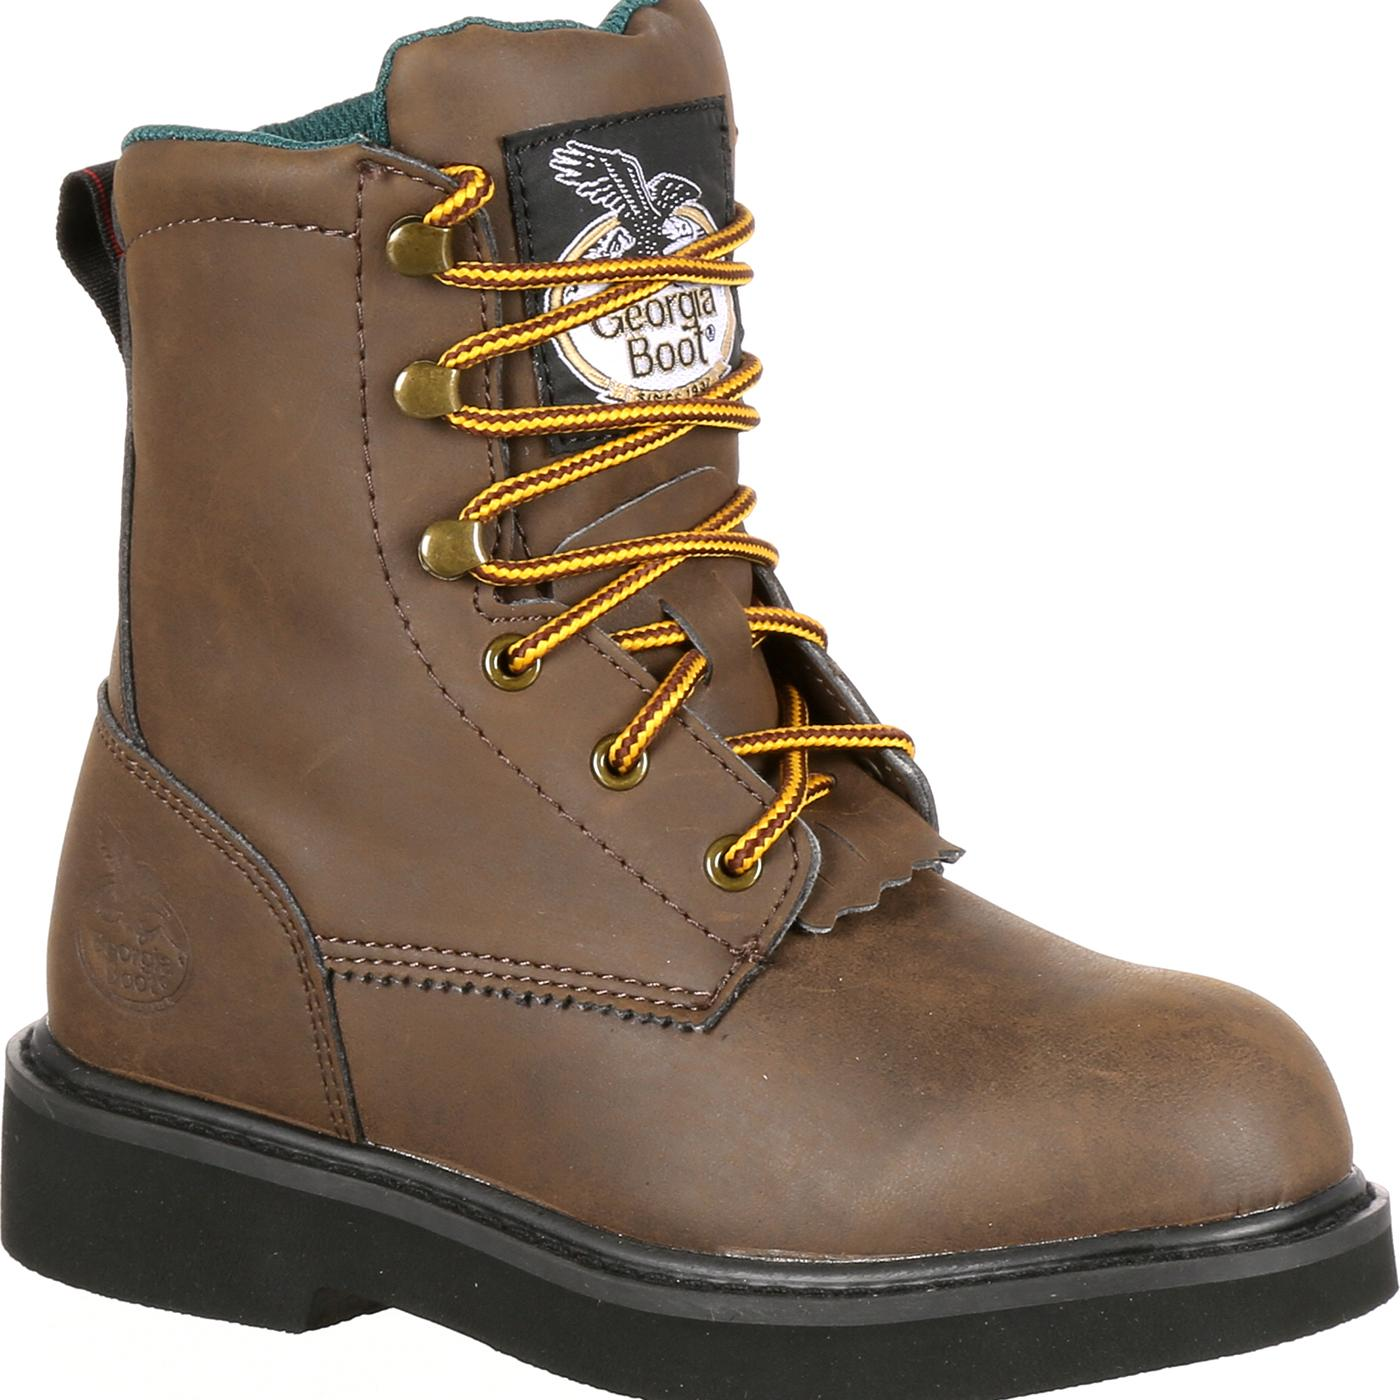 Georgia Boot: Kids' Comfortable Lacer Work Boots, #G097